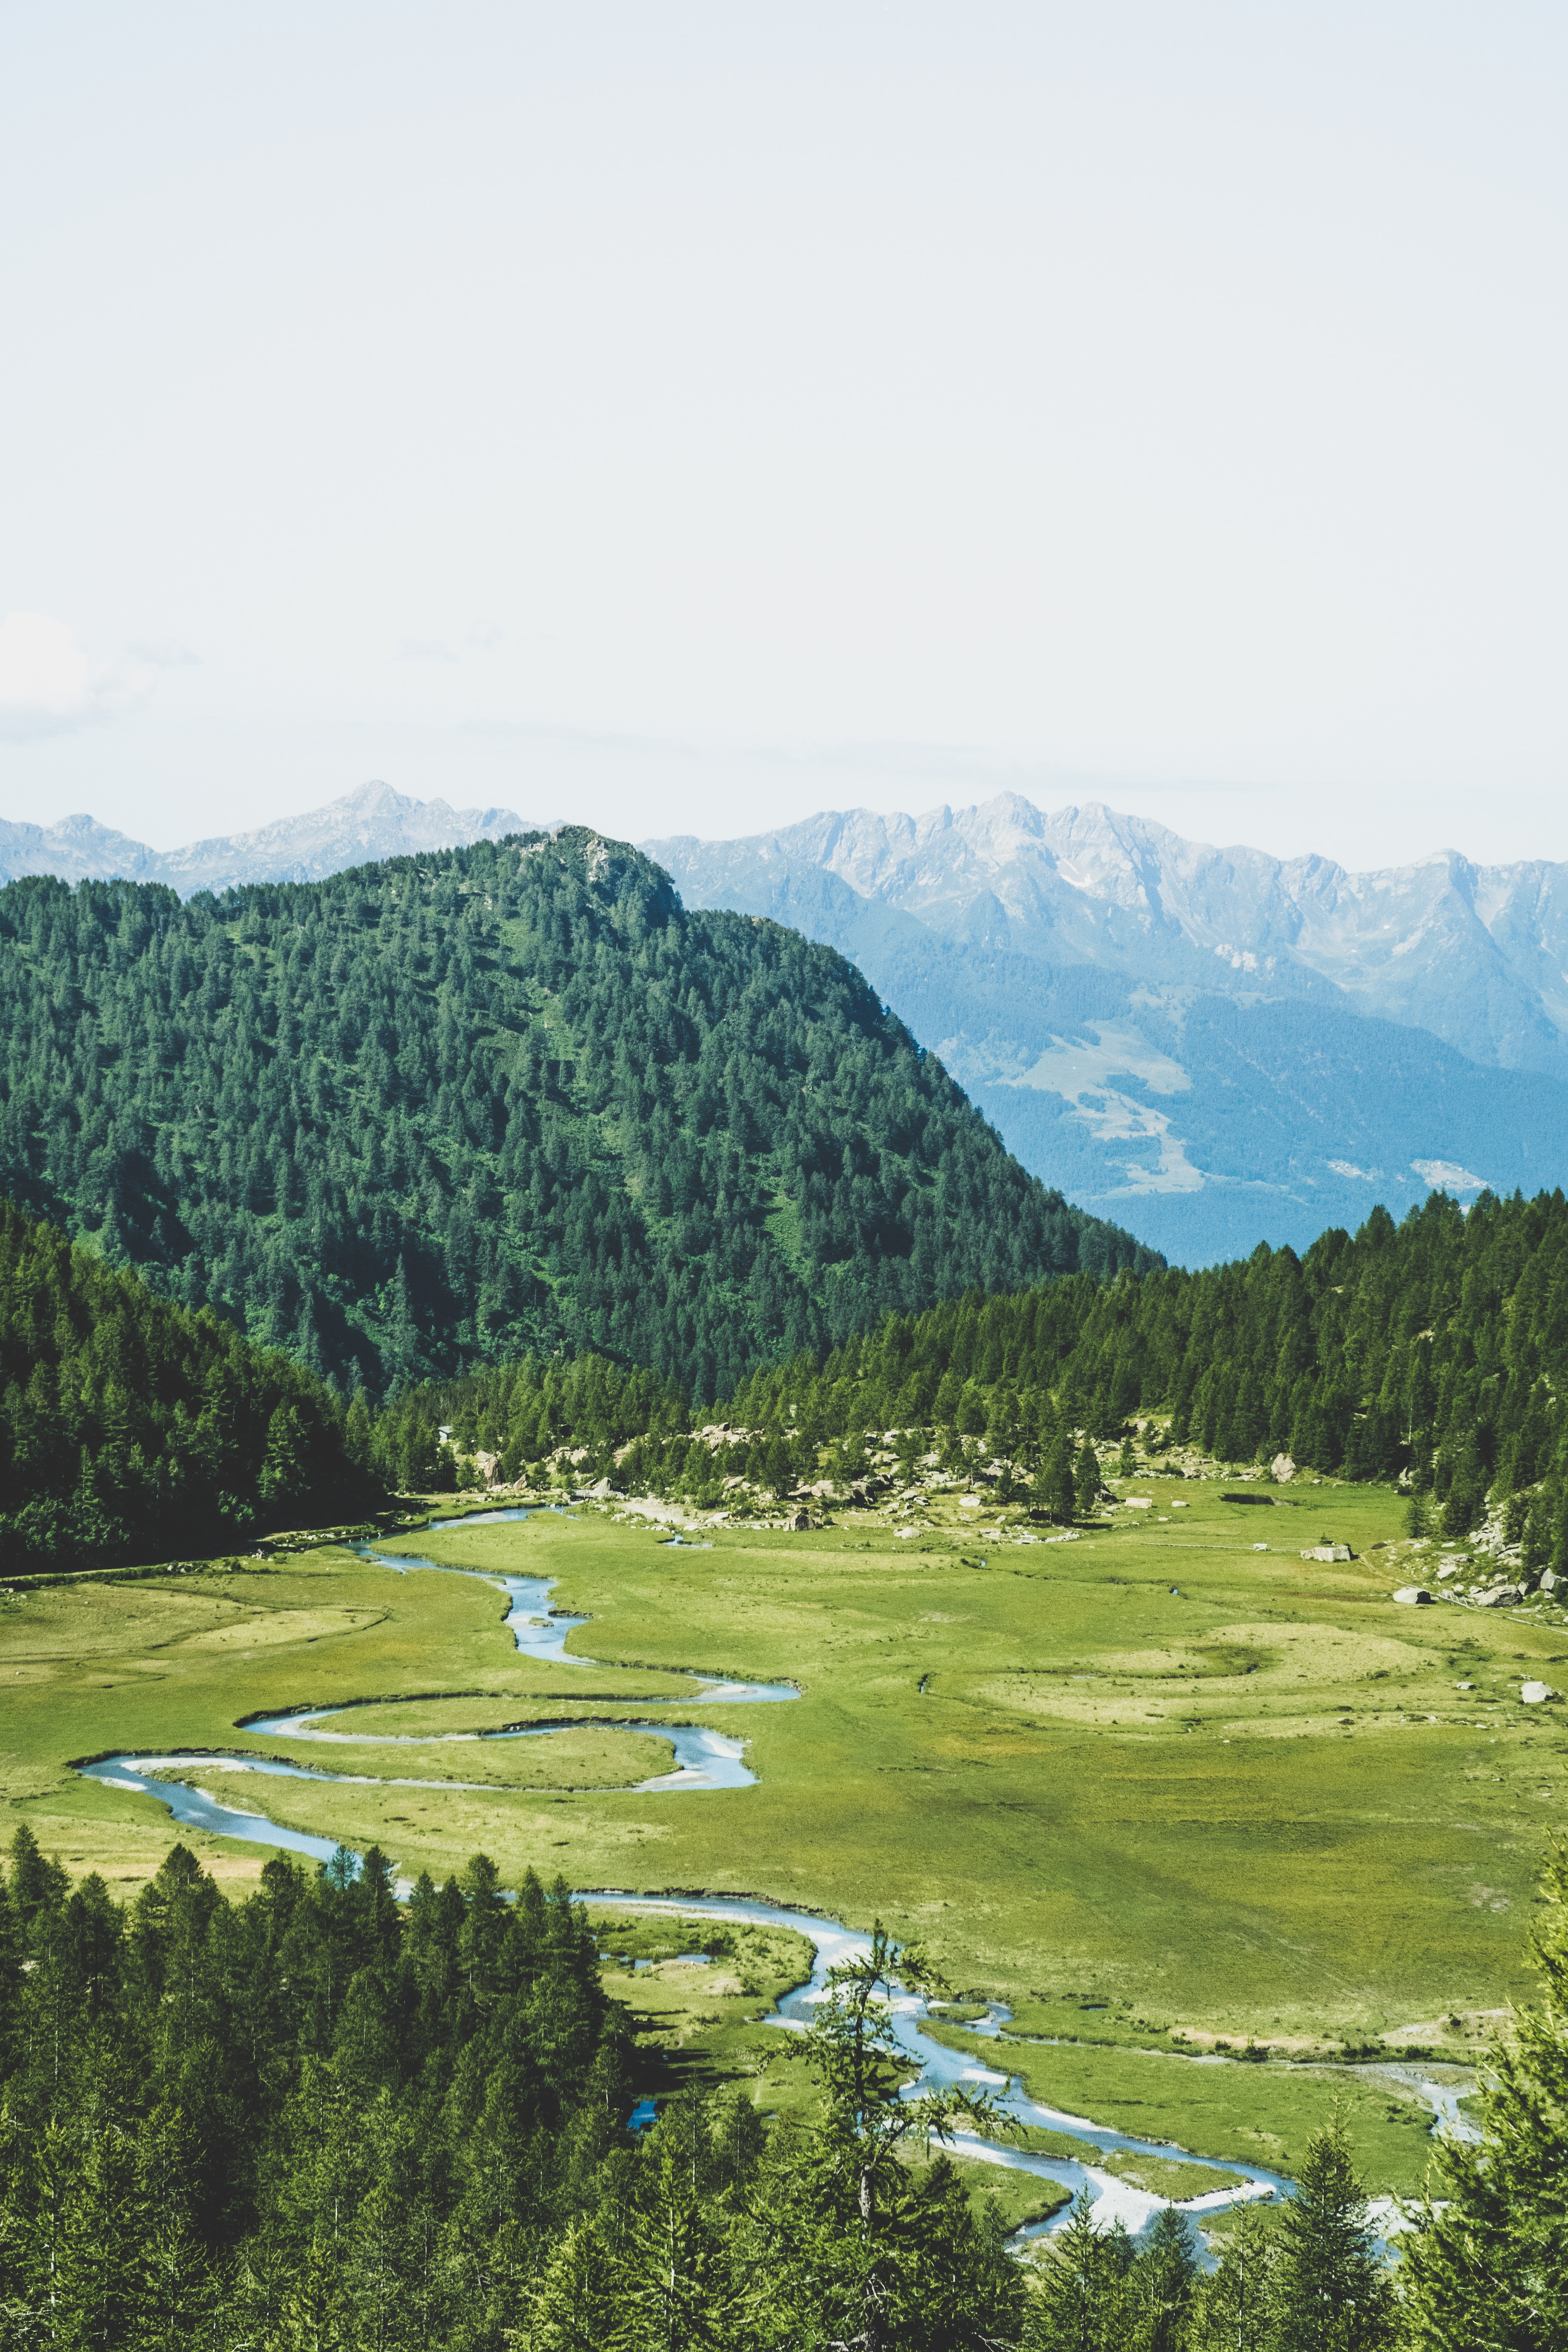 aerial view of river and grassland